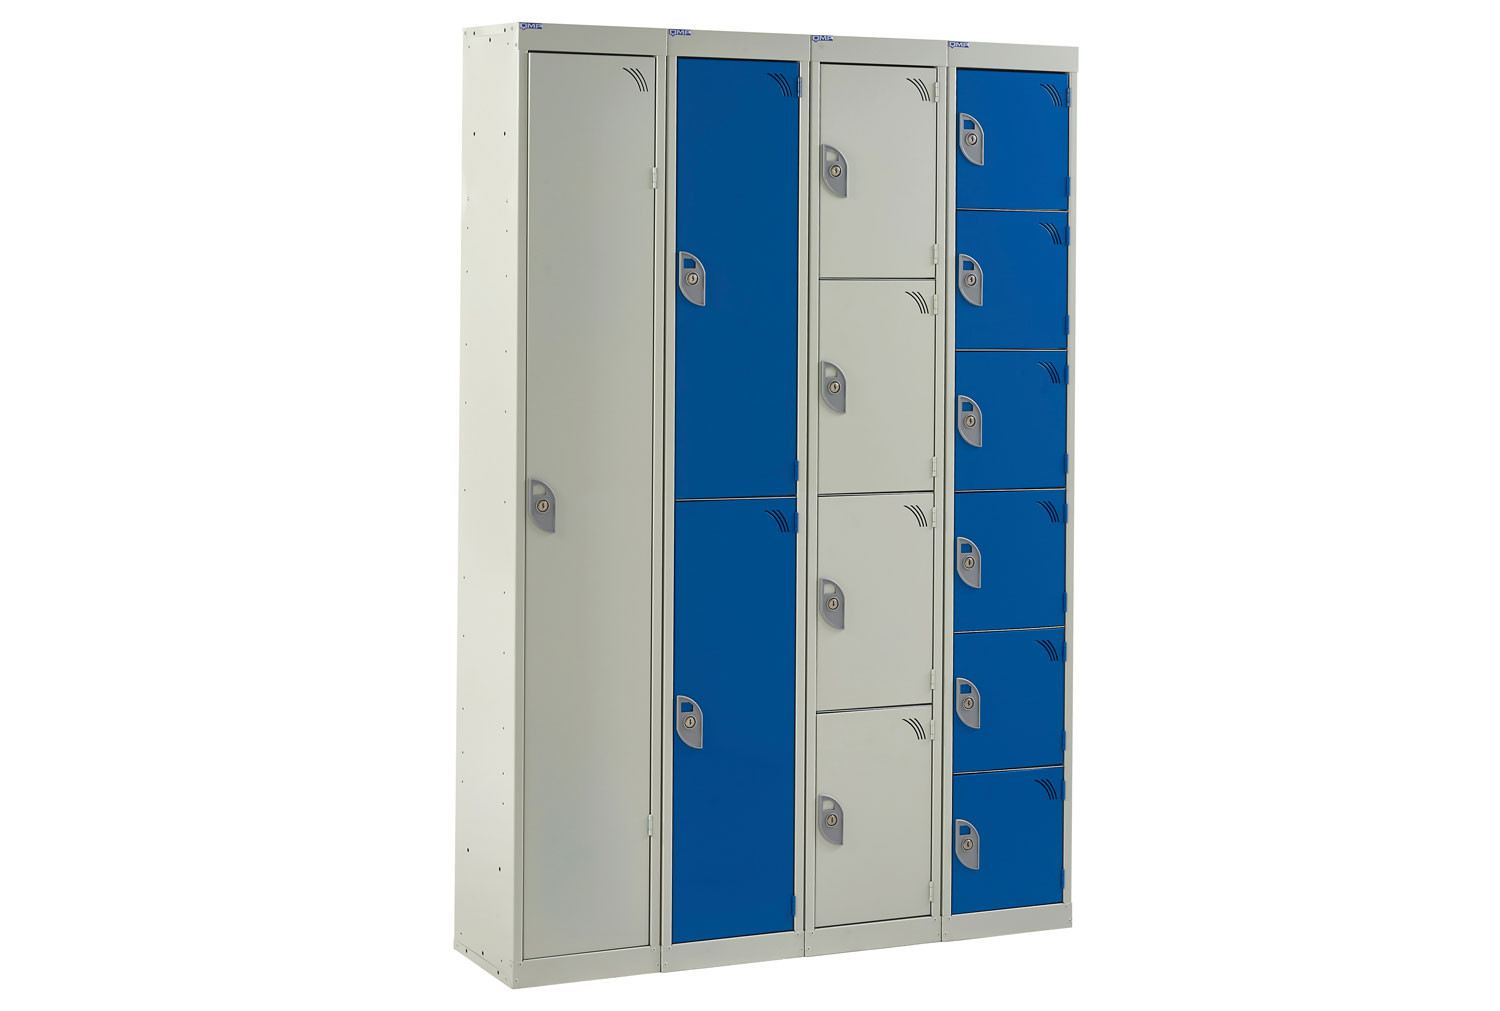 QMP Express Delivery lockers